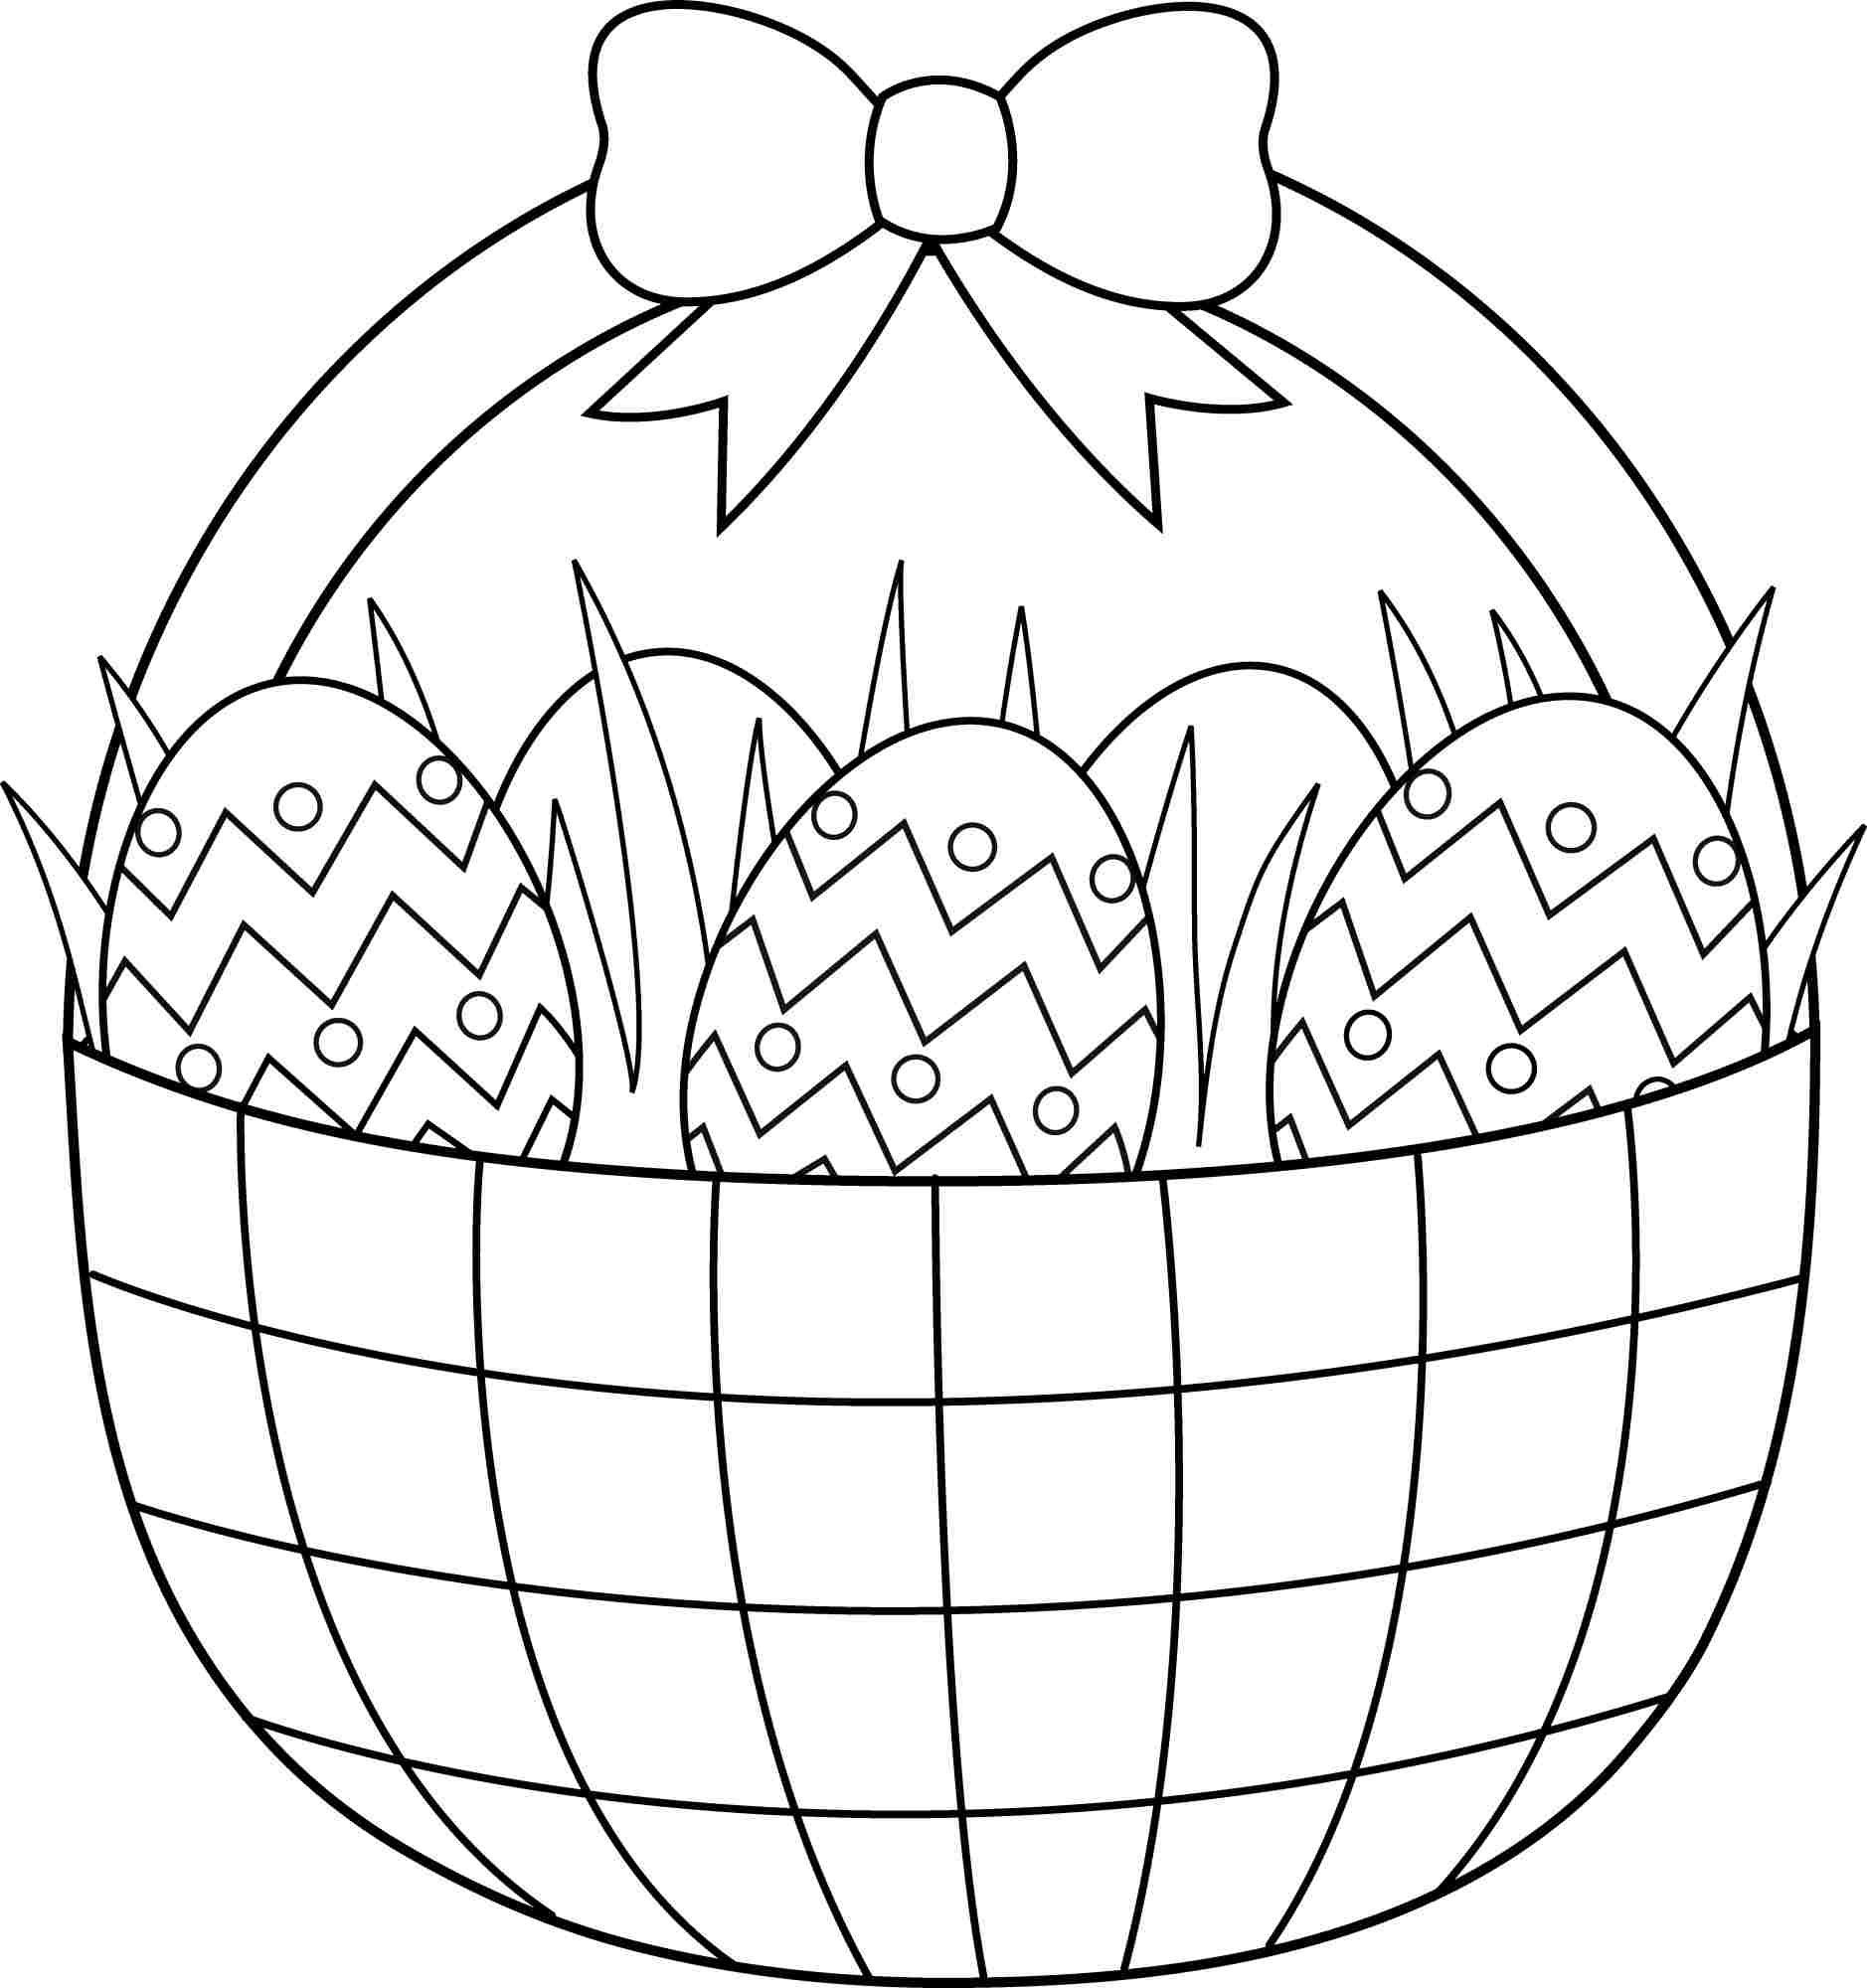 Empty Easter Basket Coloring Page - Coloring Home - Free Printable Coloring Pages Easter Basket